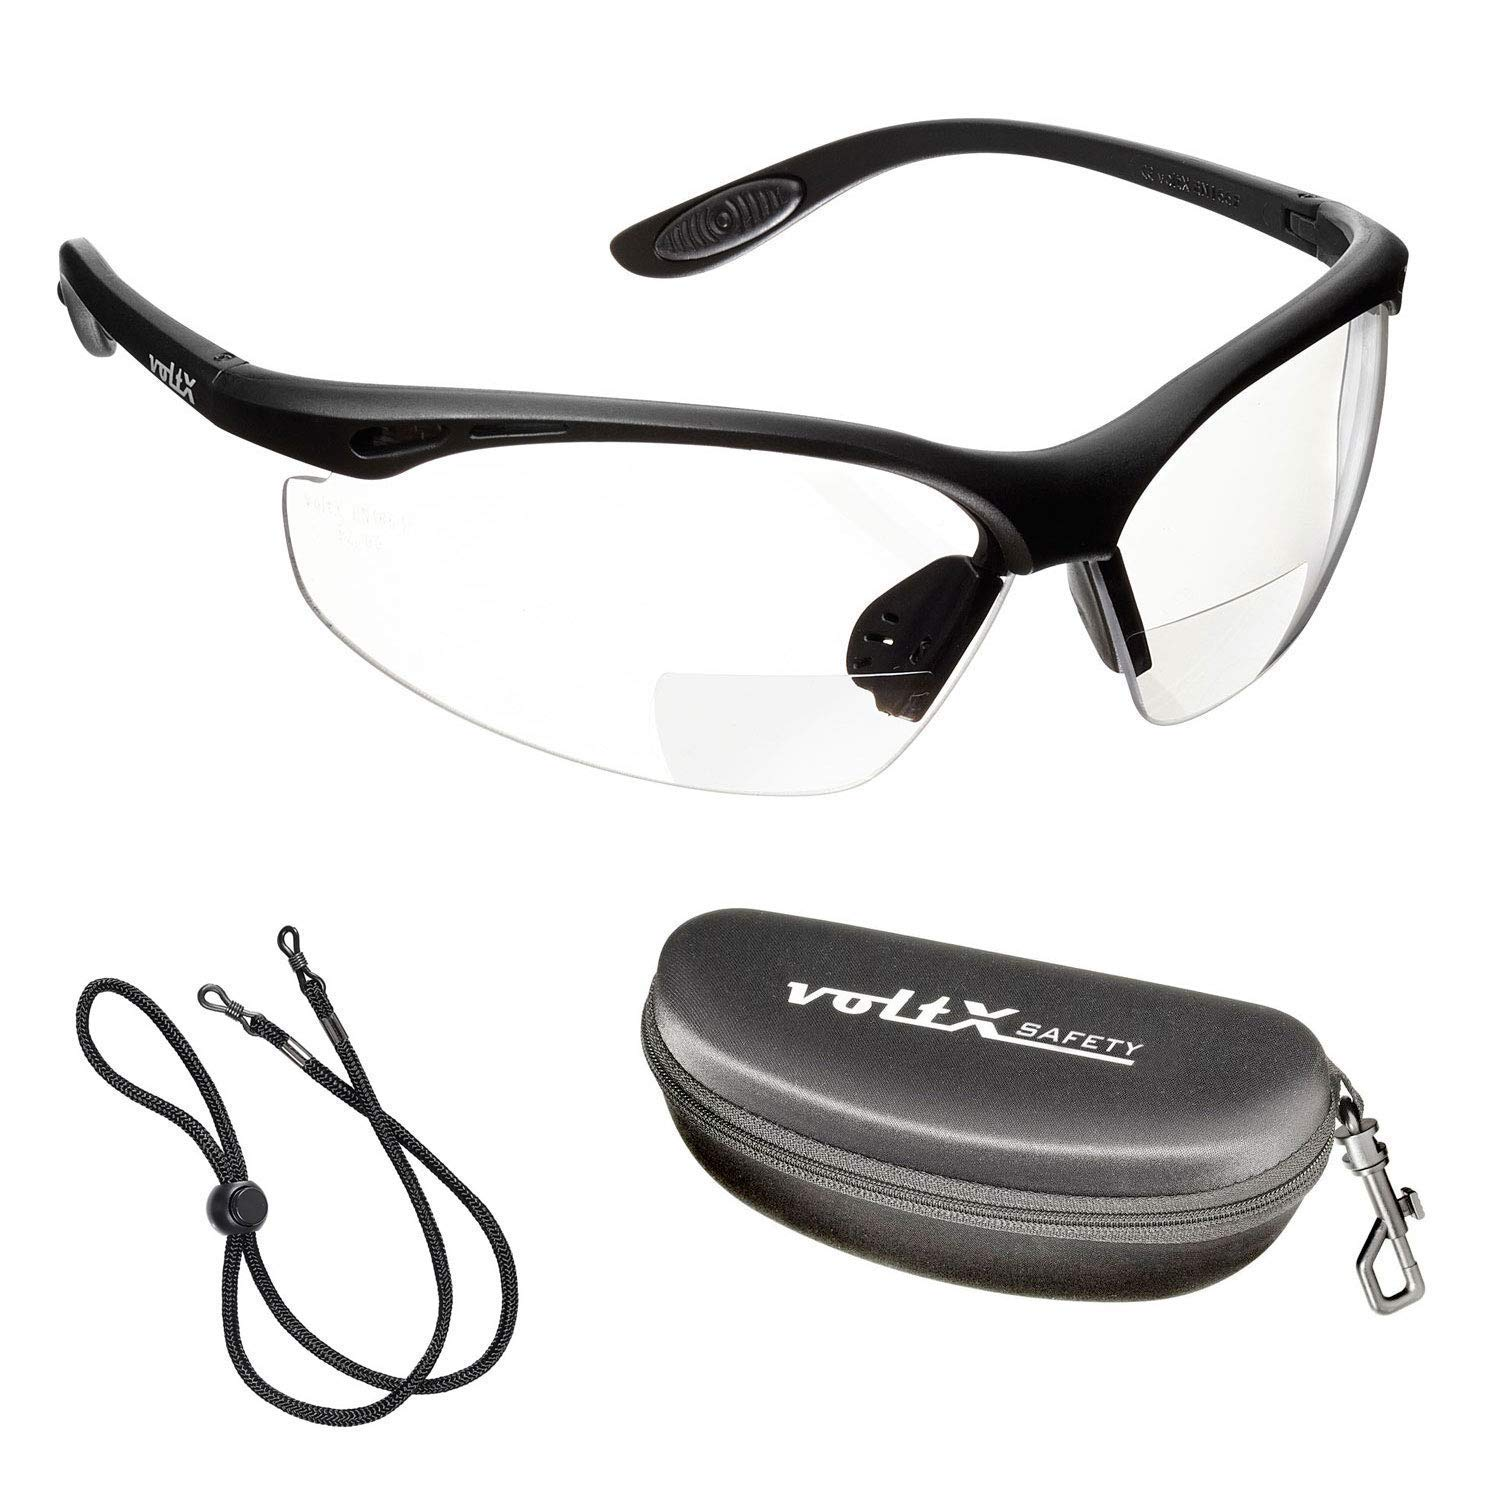 +3.5 Dioptre, Clear Includes Safety Cord with headstop Wraparound Style 3 x voltX CONSTRUCTOR BIFOCAL Reading Safety Glasses CE EN166f certified//Cycling Sports Glasses